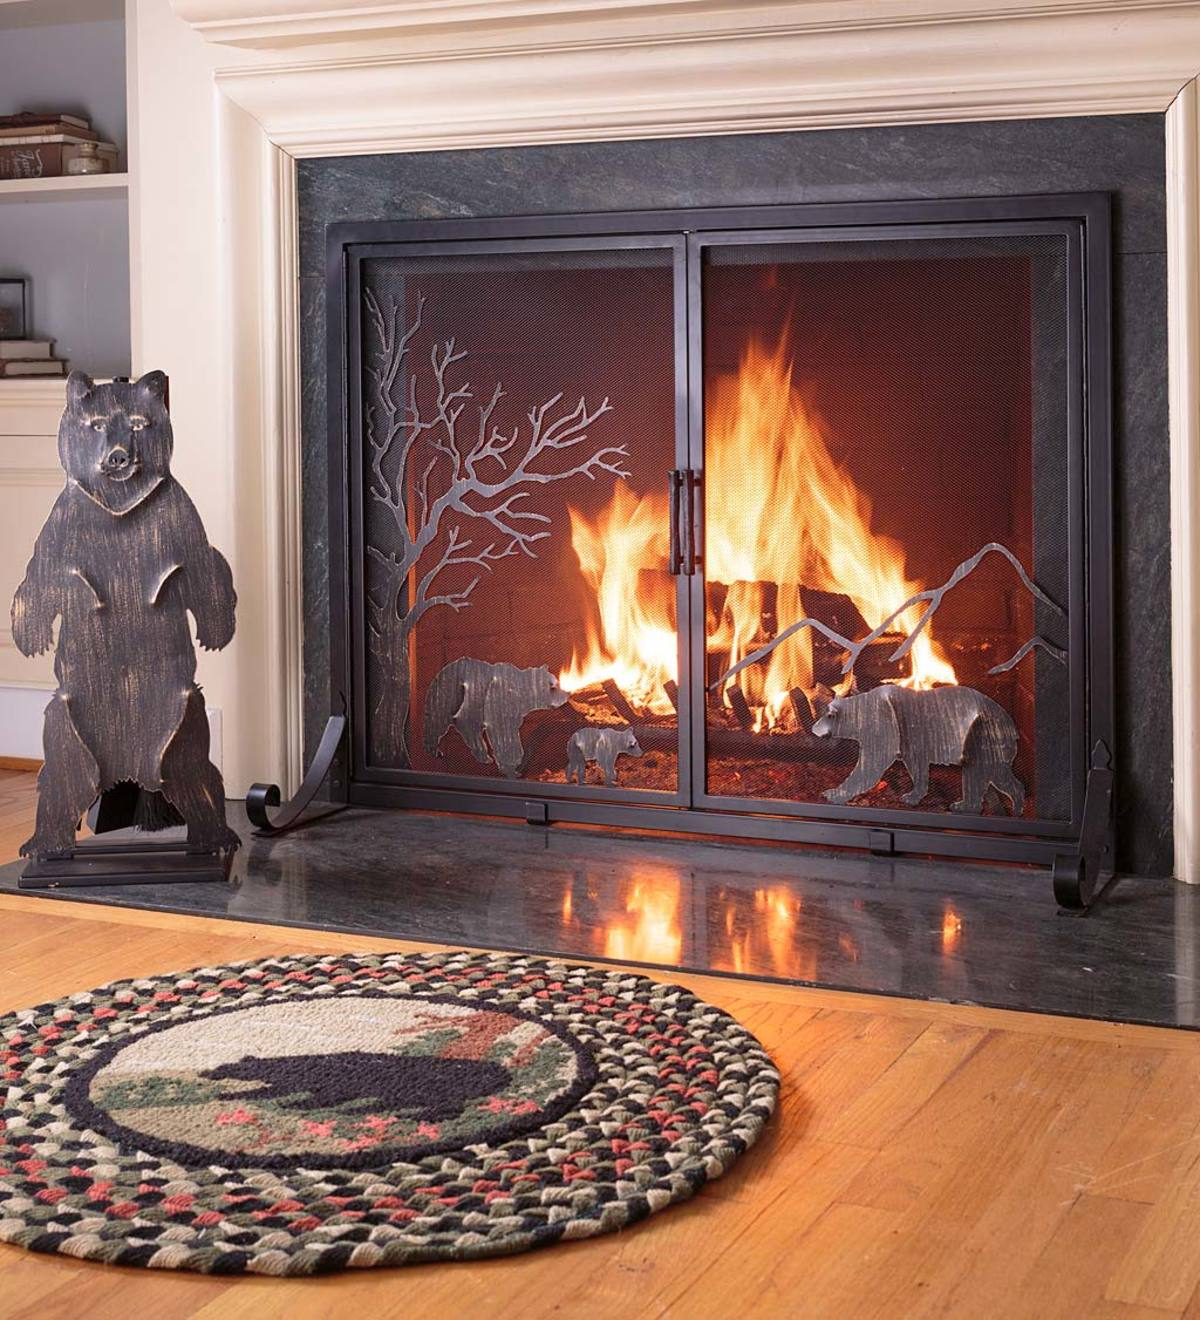 Image result for fireplace screen